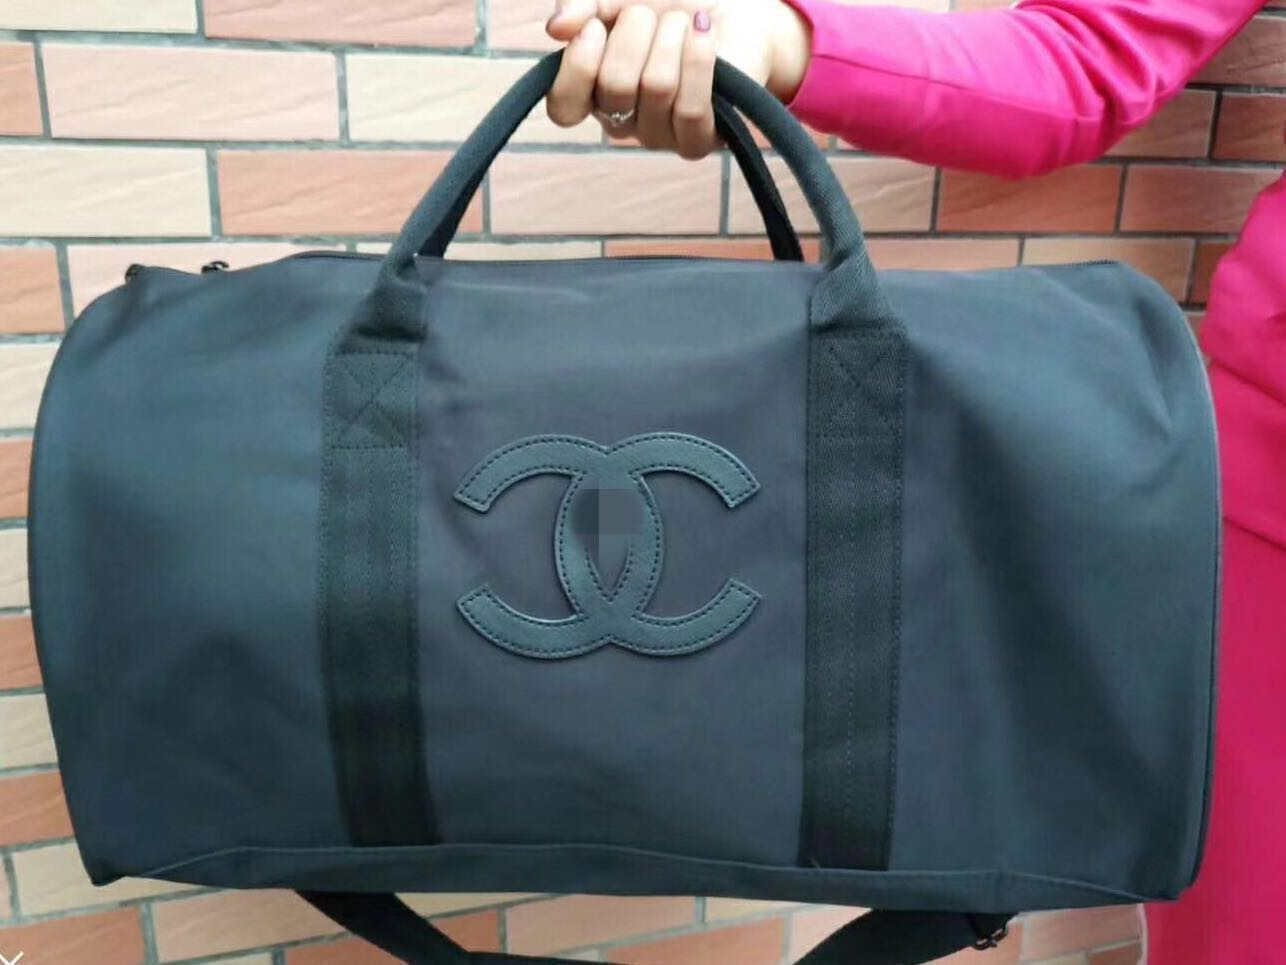 fdc16829e217 PRICE LOWERED Auth. Chanel VIP Gift Bag, Luxury, Bags & Wallets ...